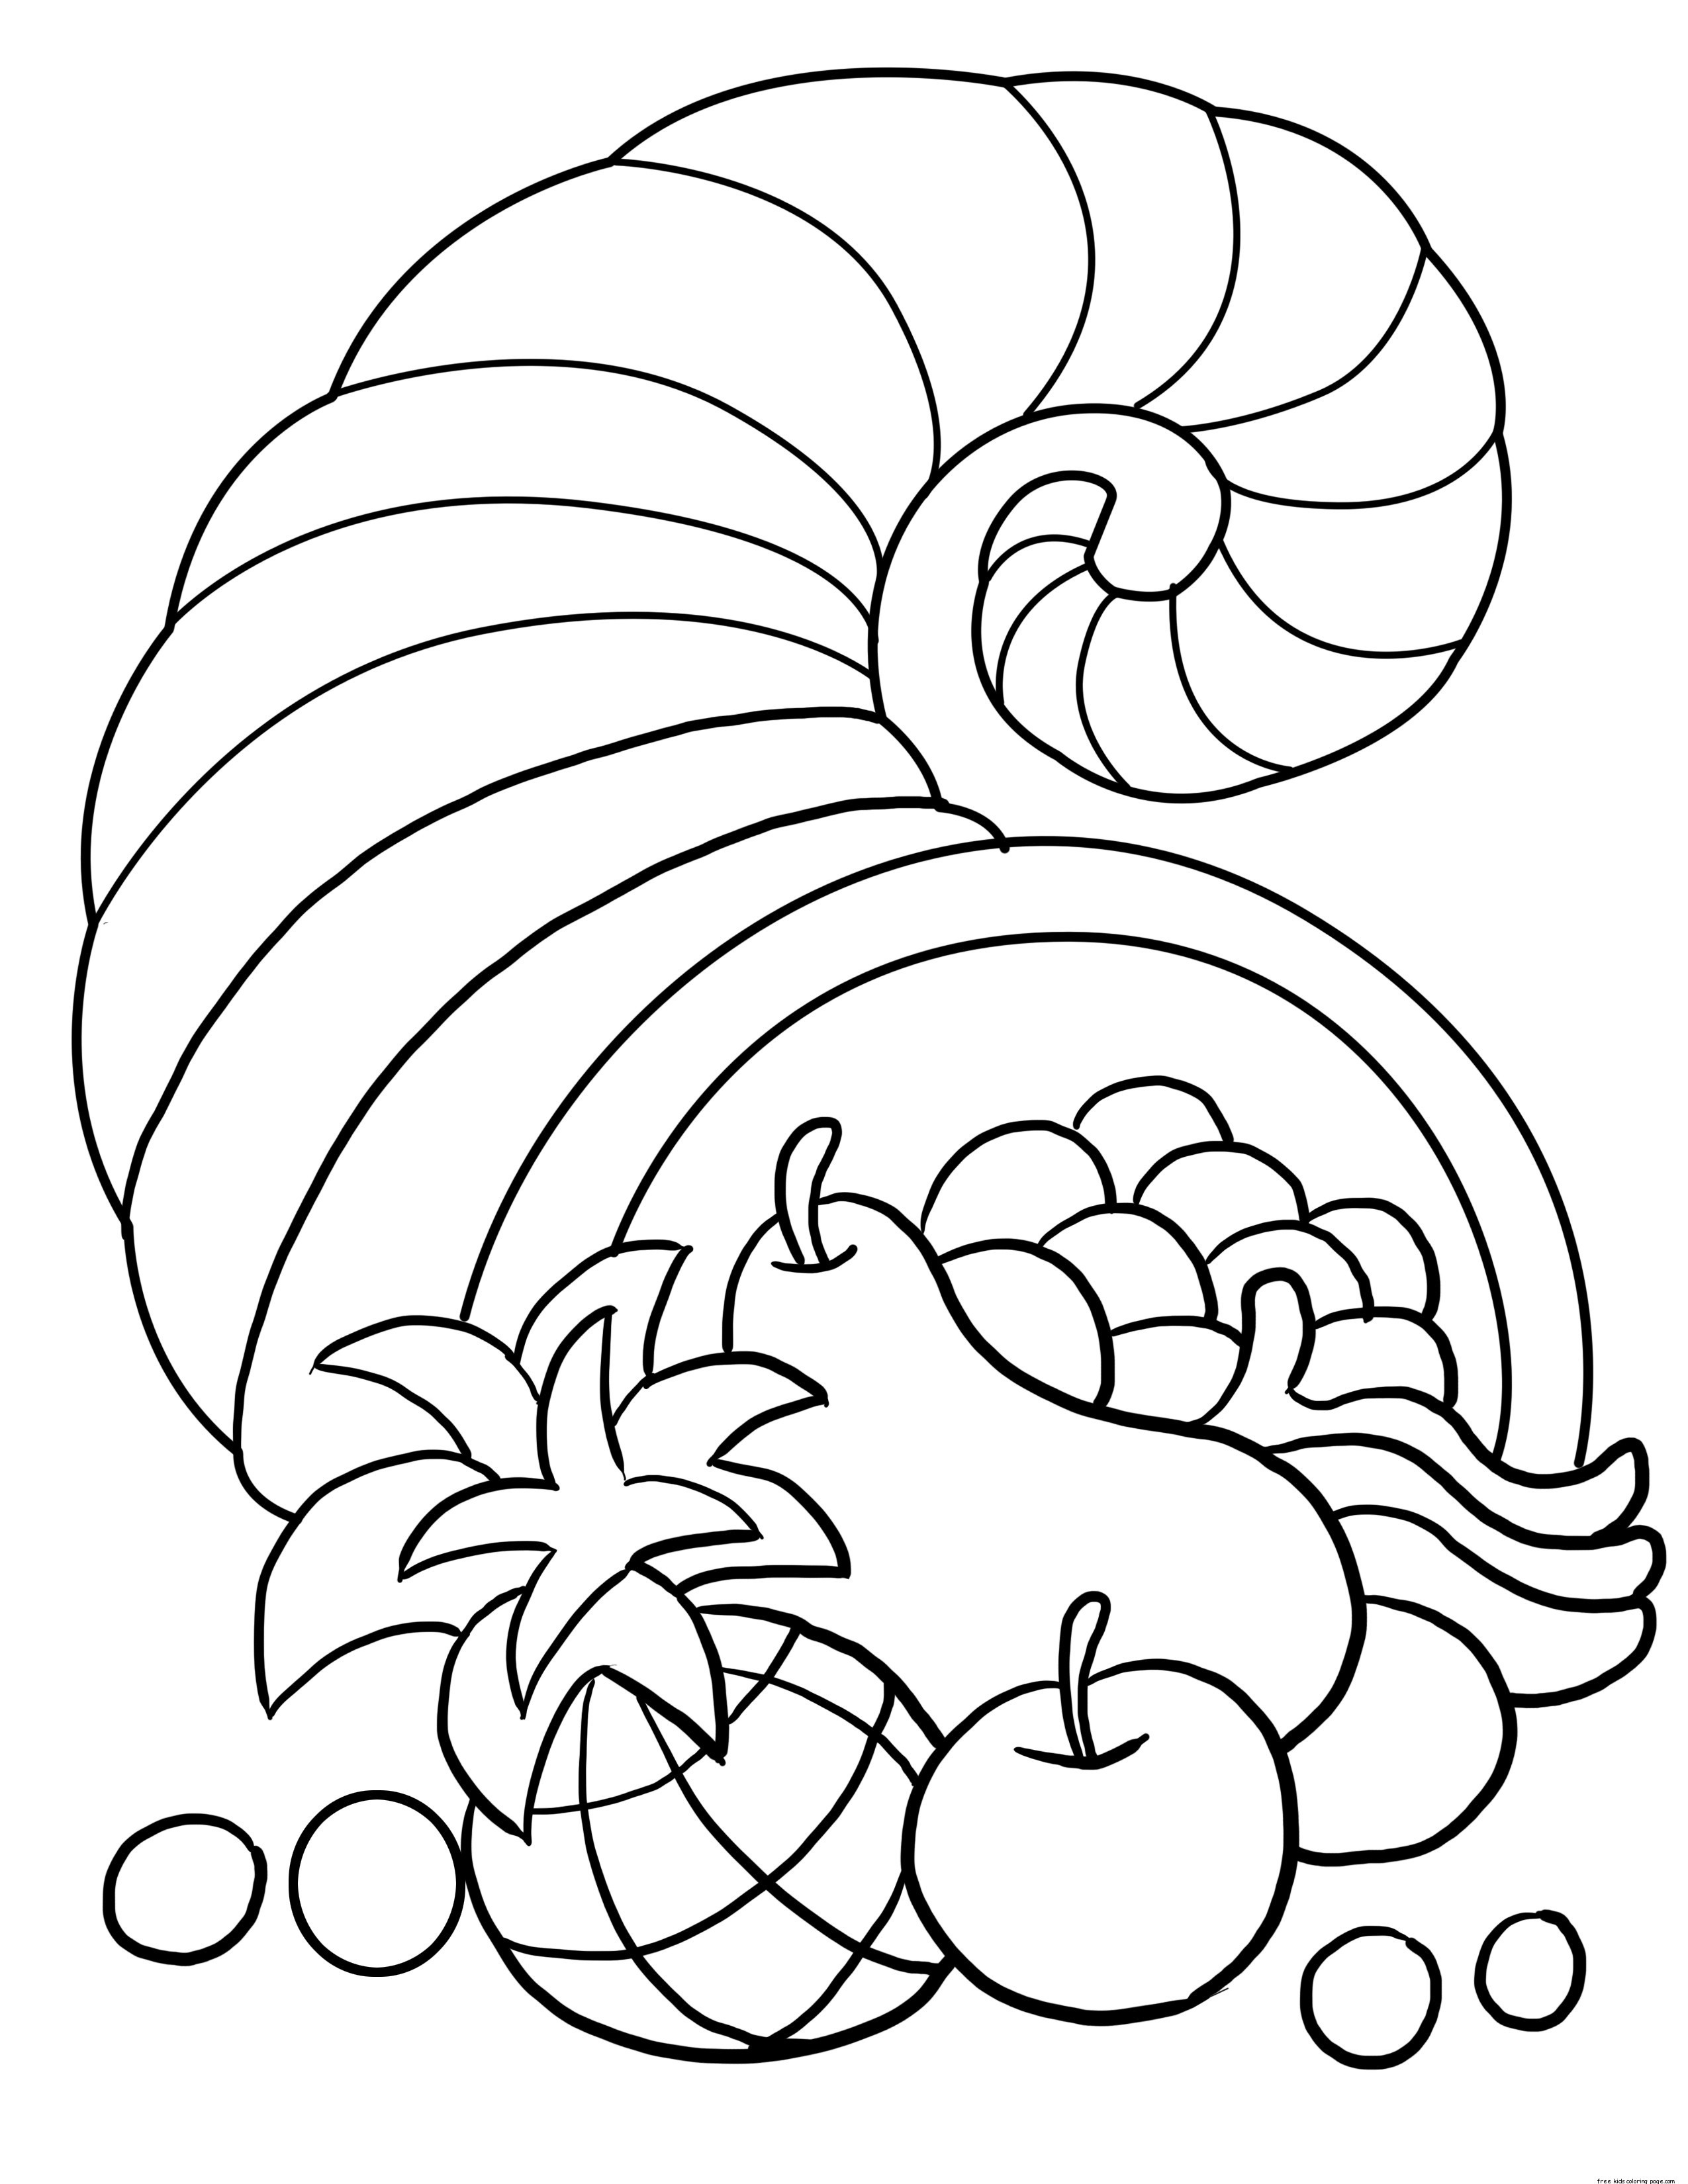 Best ideas about Free Coloring Sheets On Gratutude . Save or Pin thanksgiving cornucopia coloring sheet for kidsFree Now.